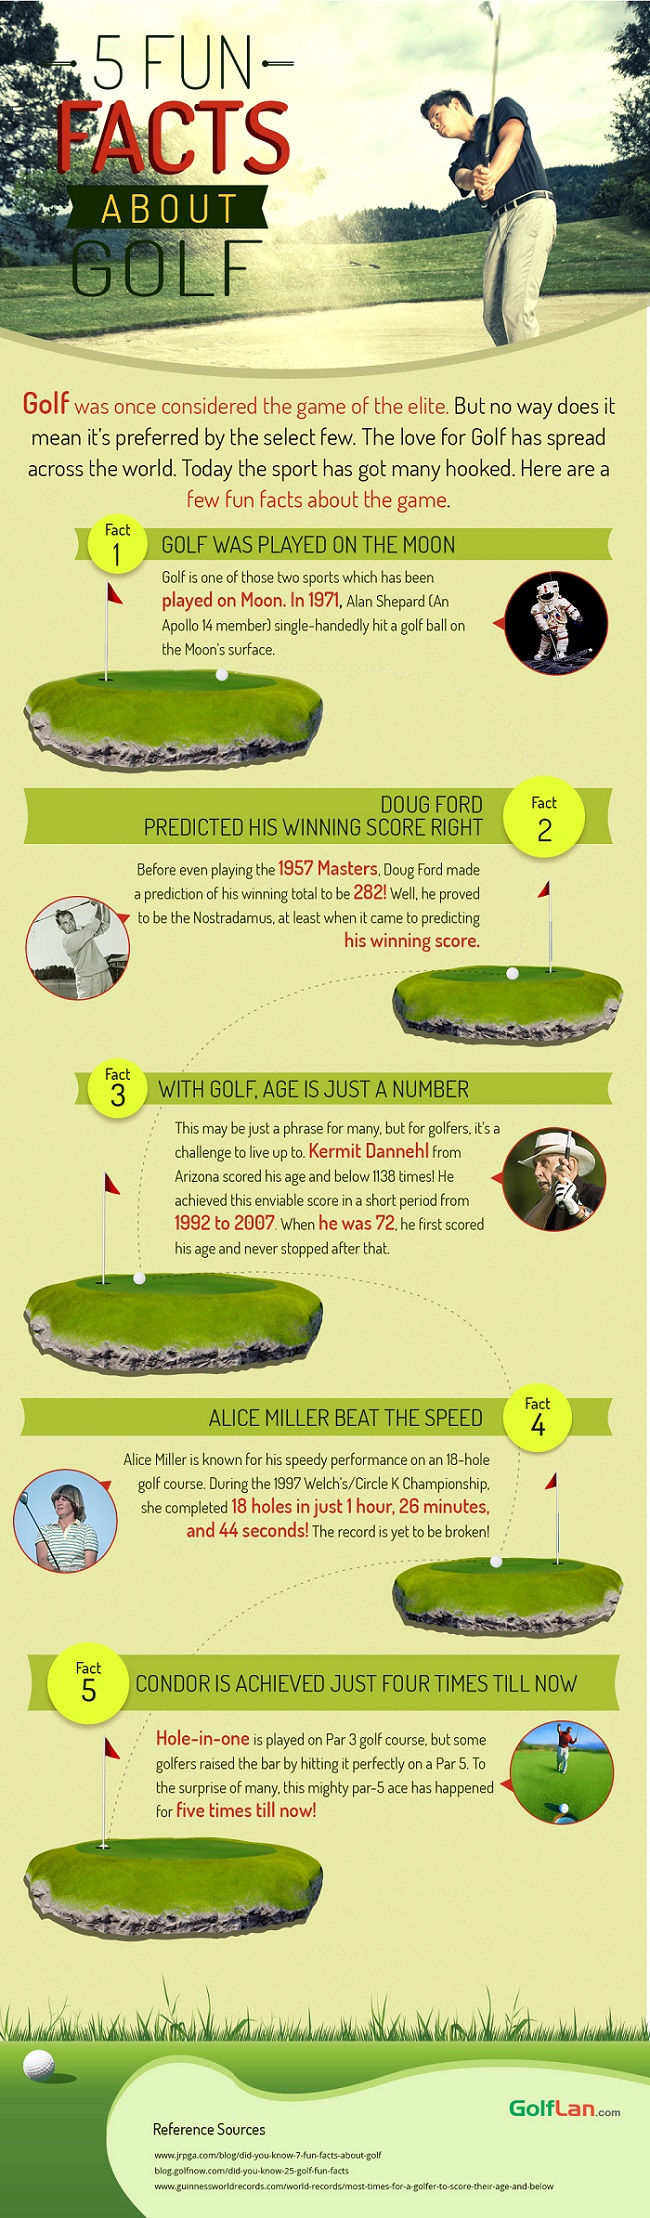 5 fun facts about Golf